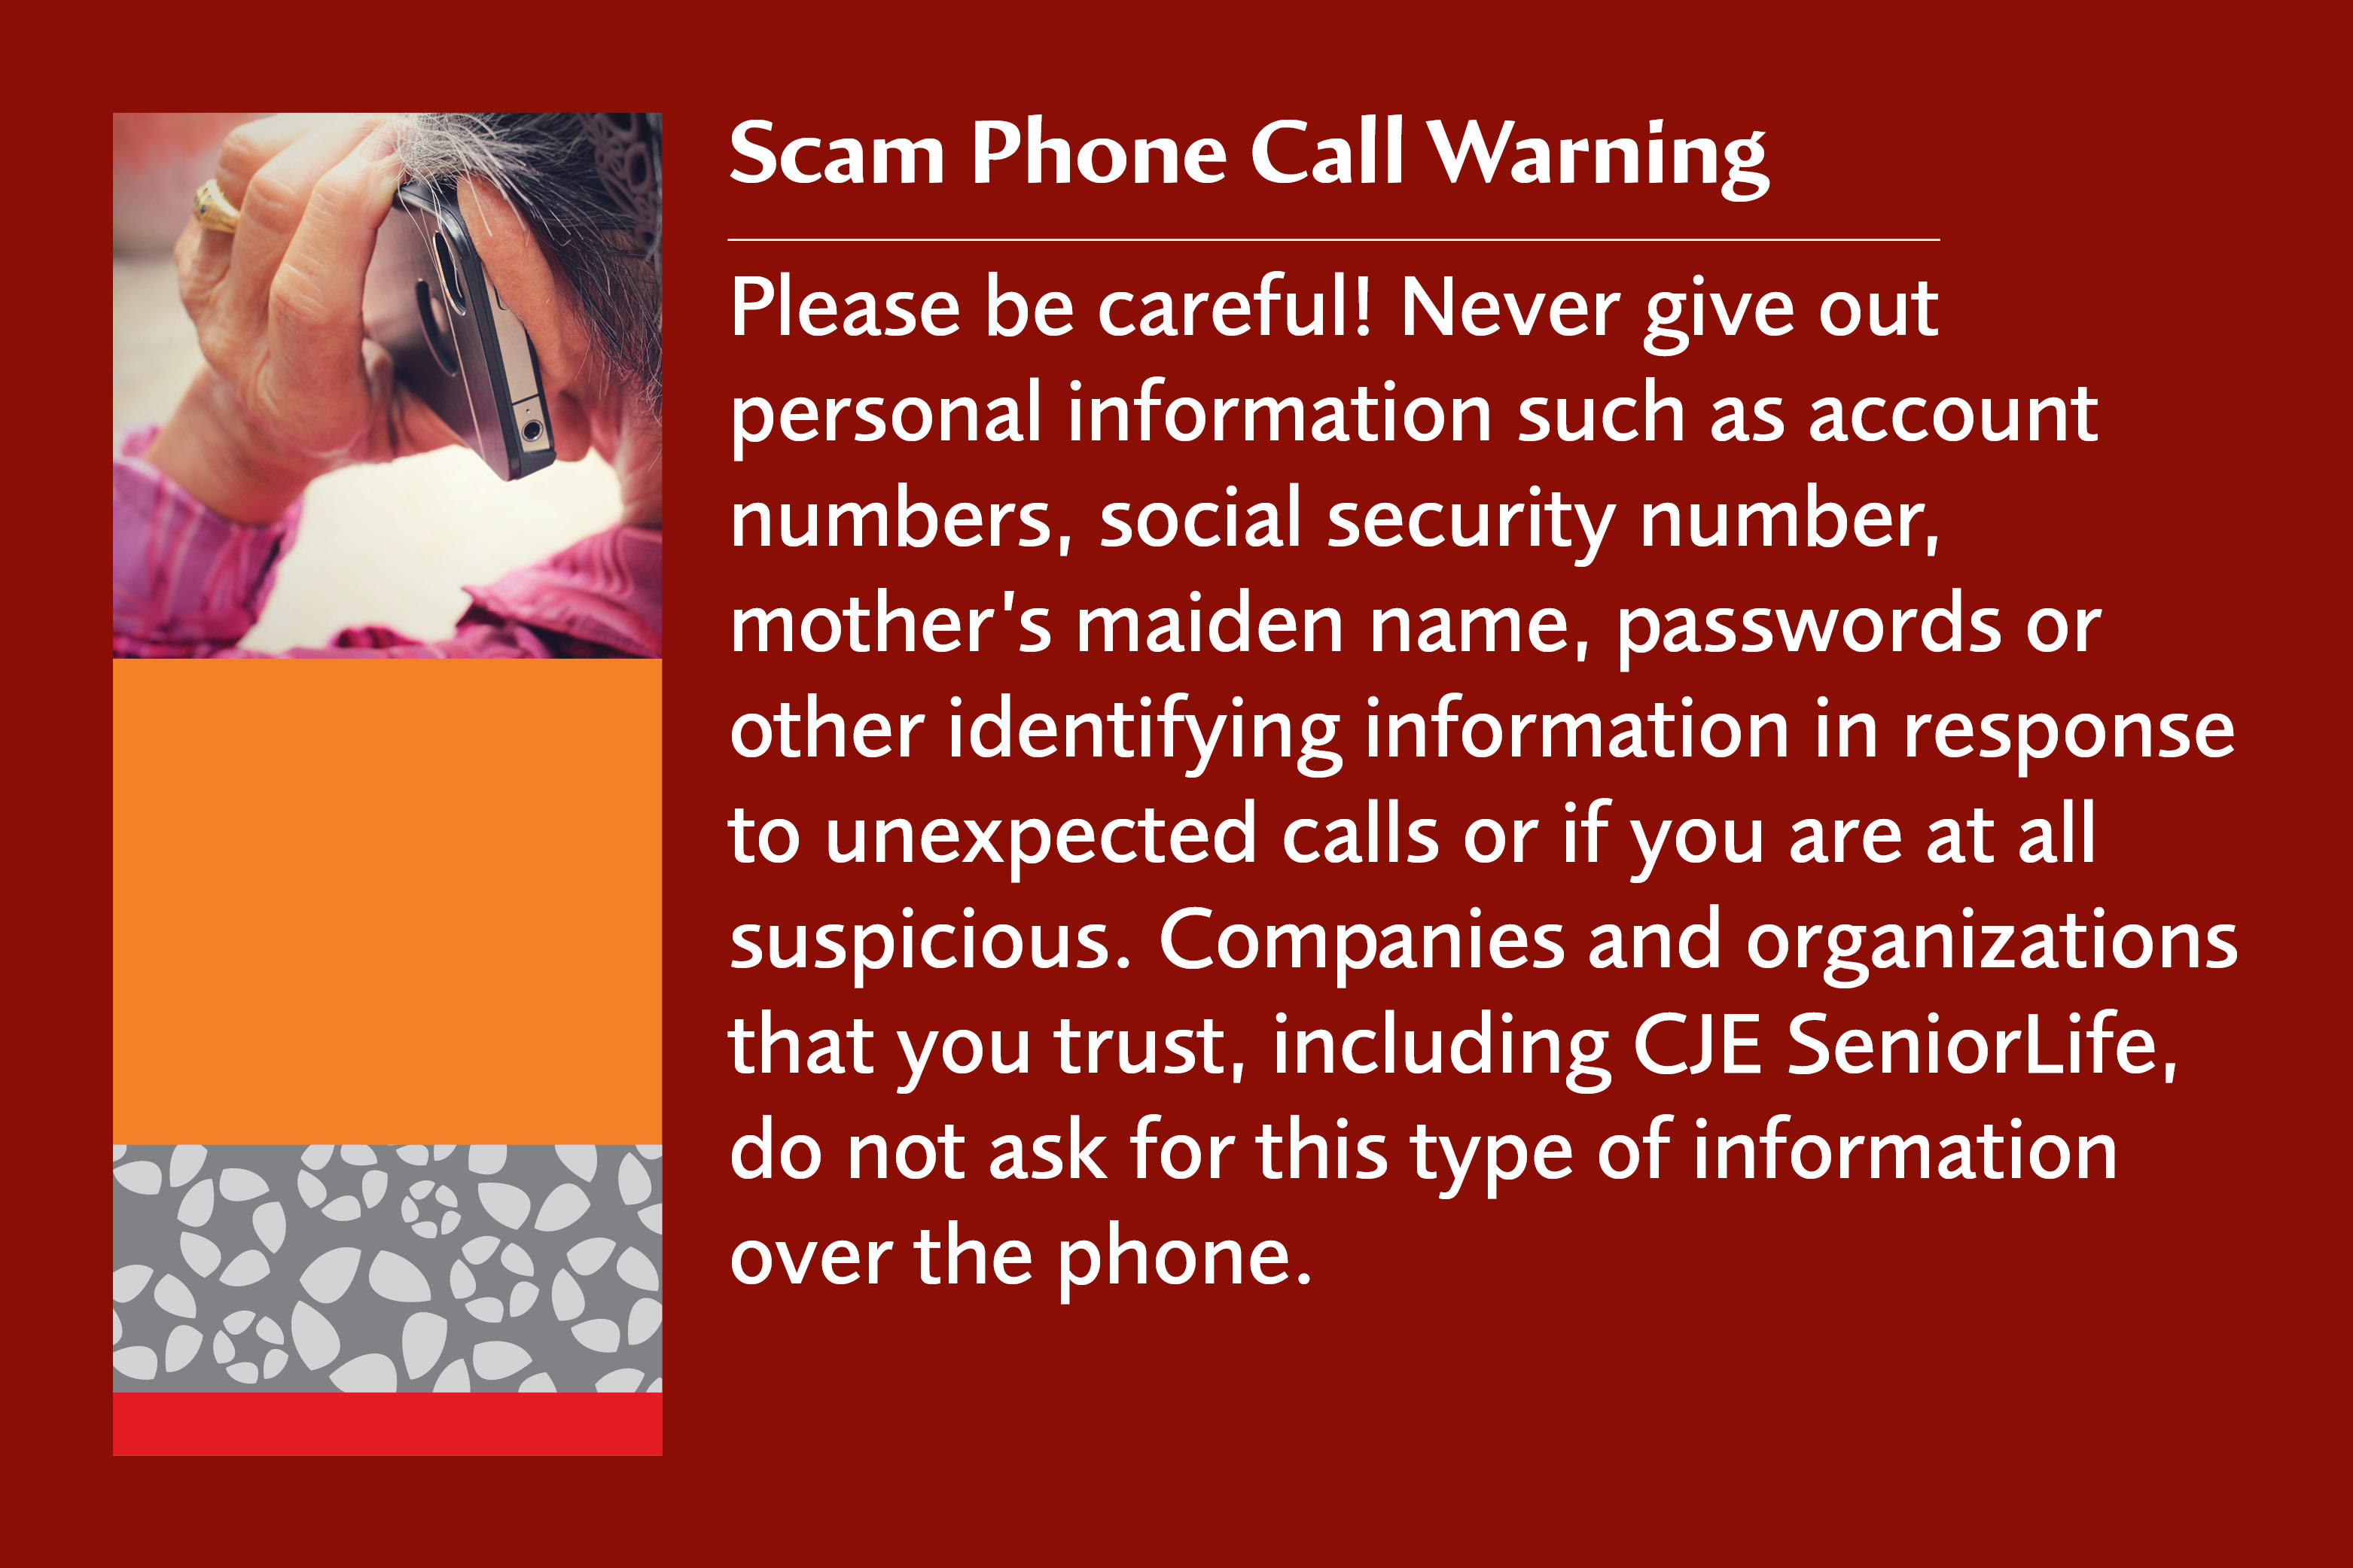 Phone spoofing warning